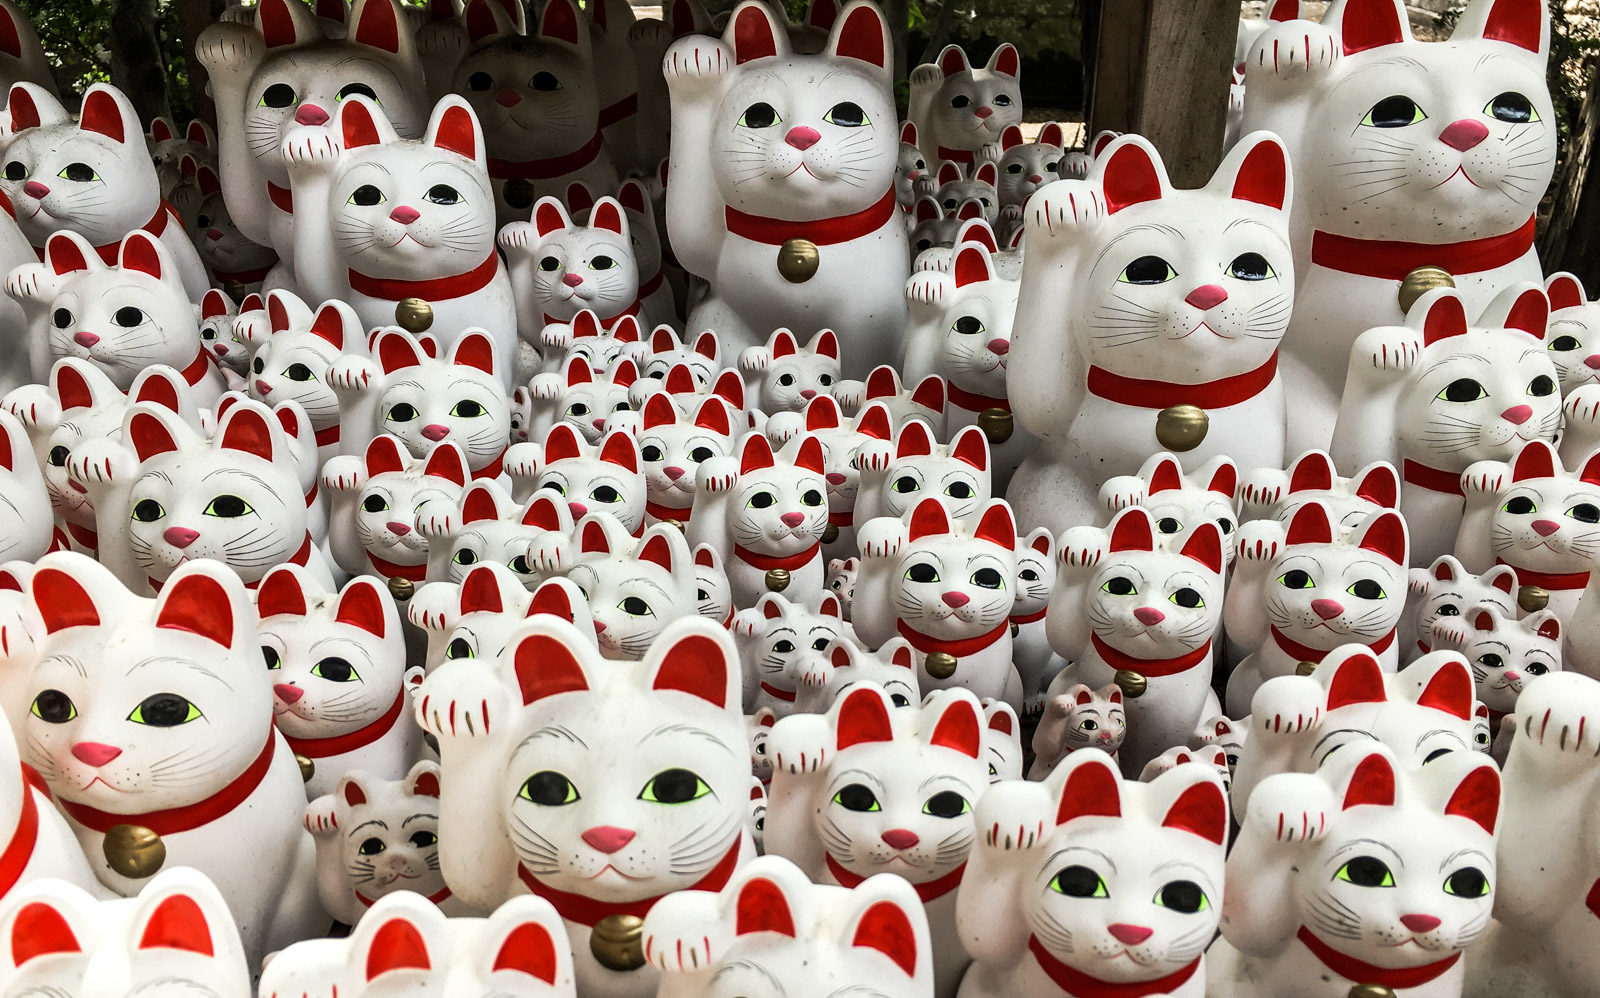 Gotokuji, the home of Maneki Neko